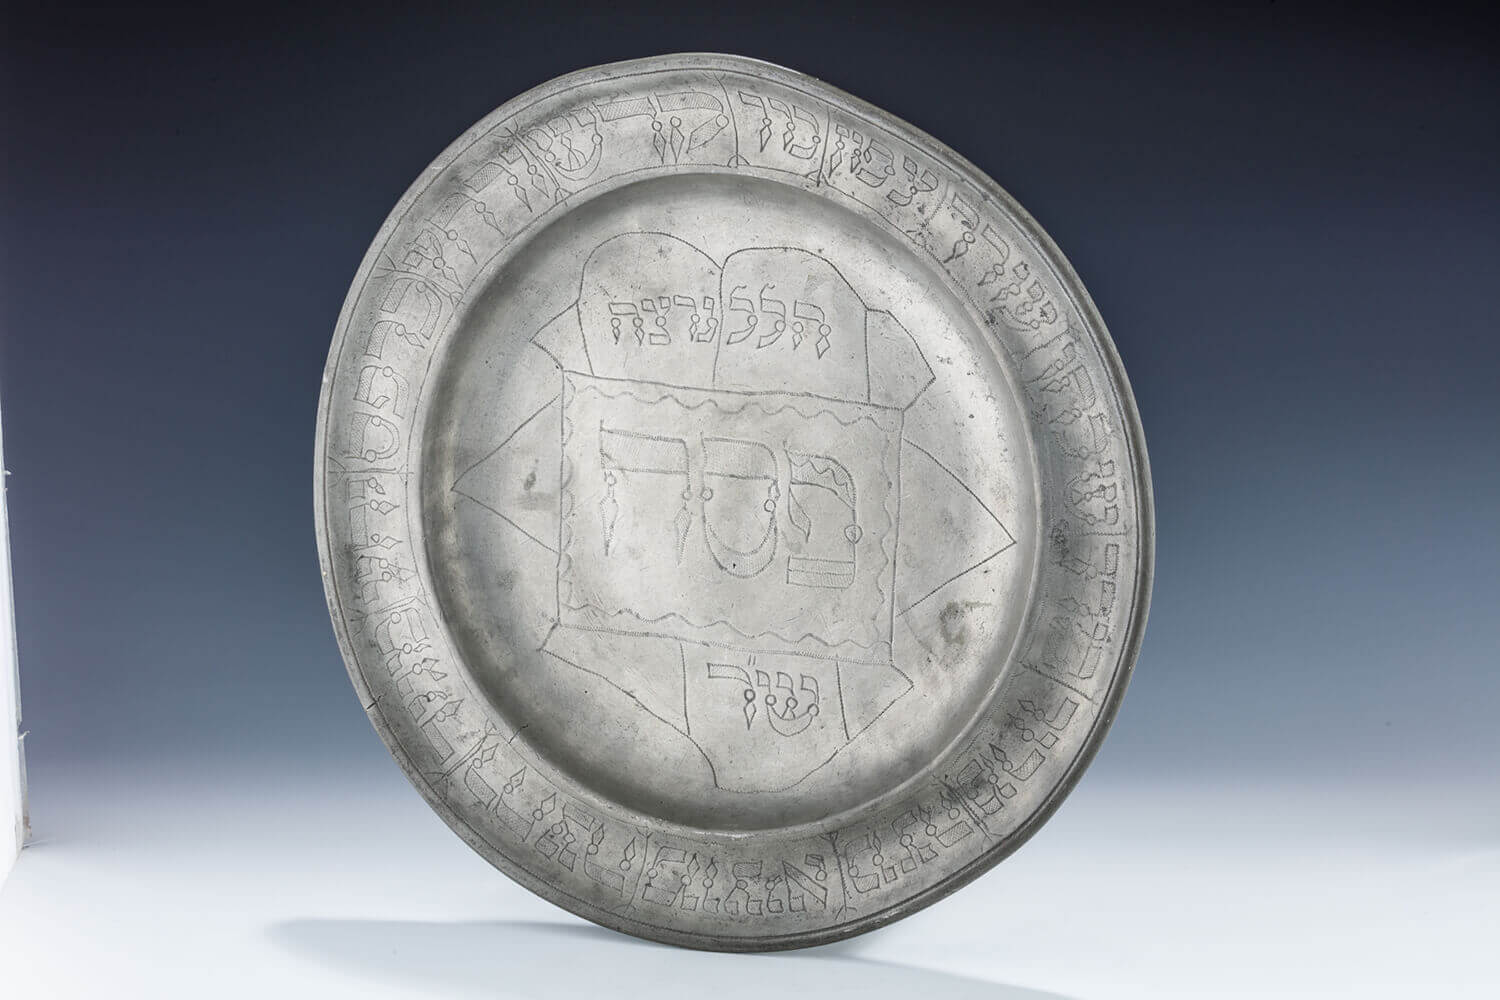 064. A MONUMENTAL PEWTER SEDER TRAY